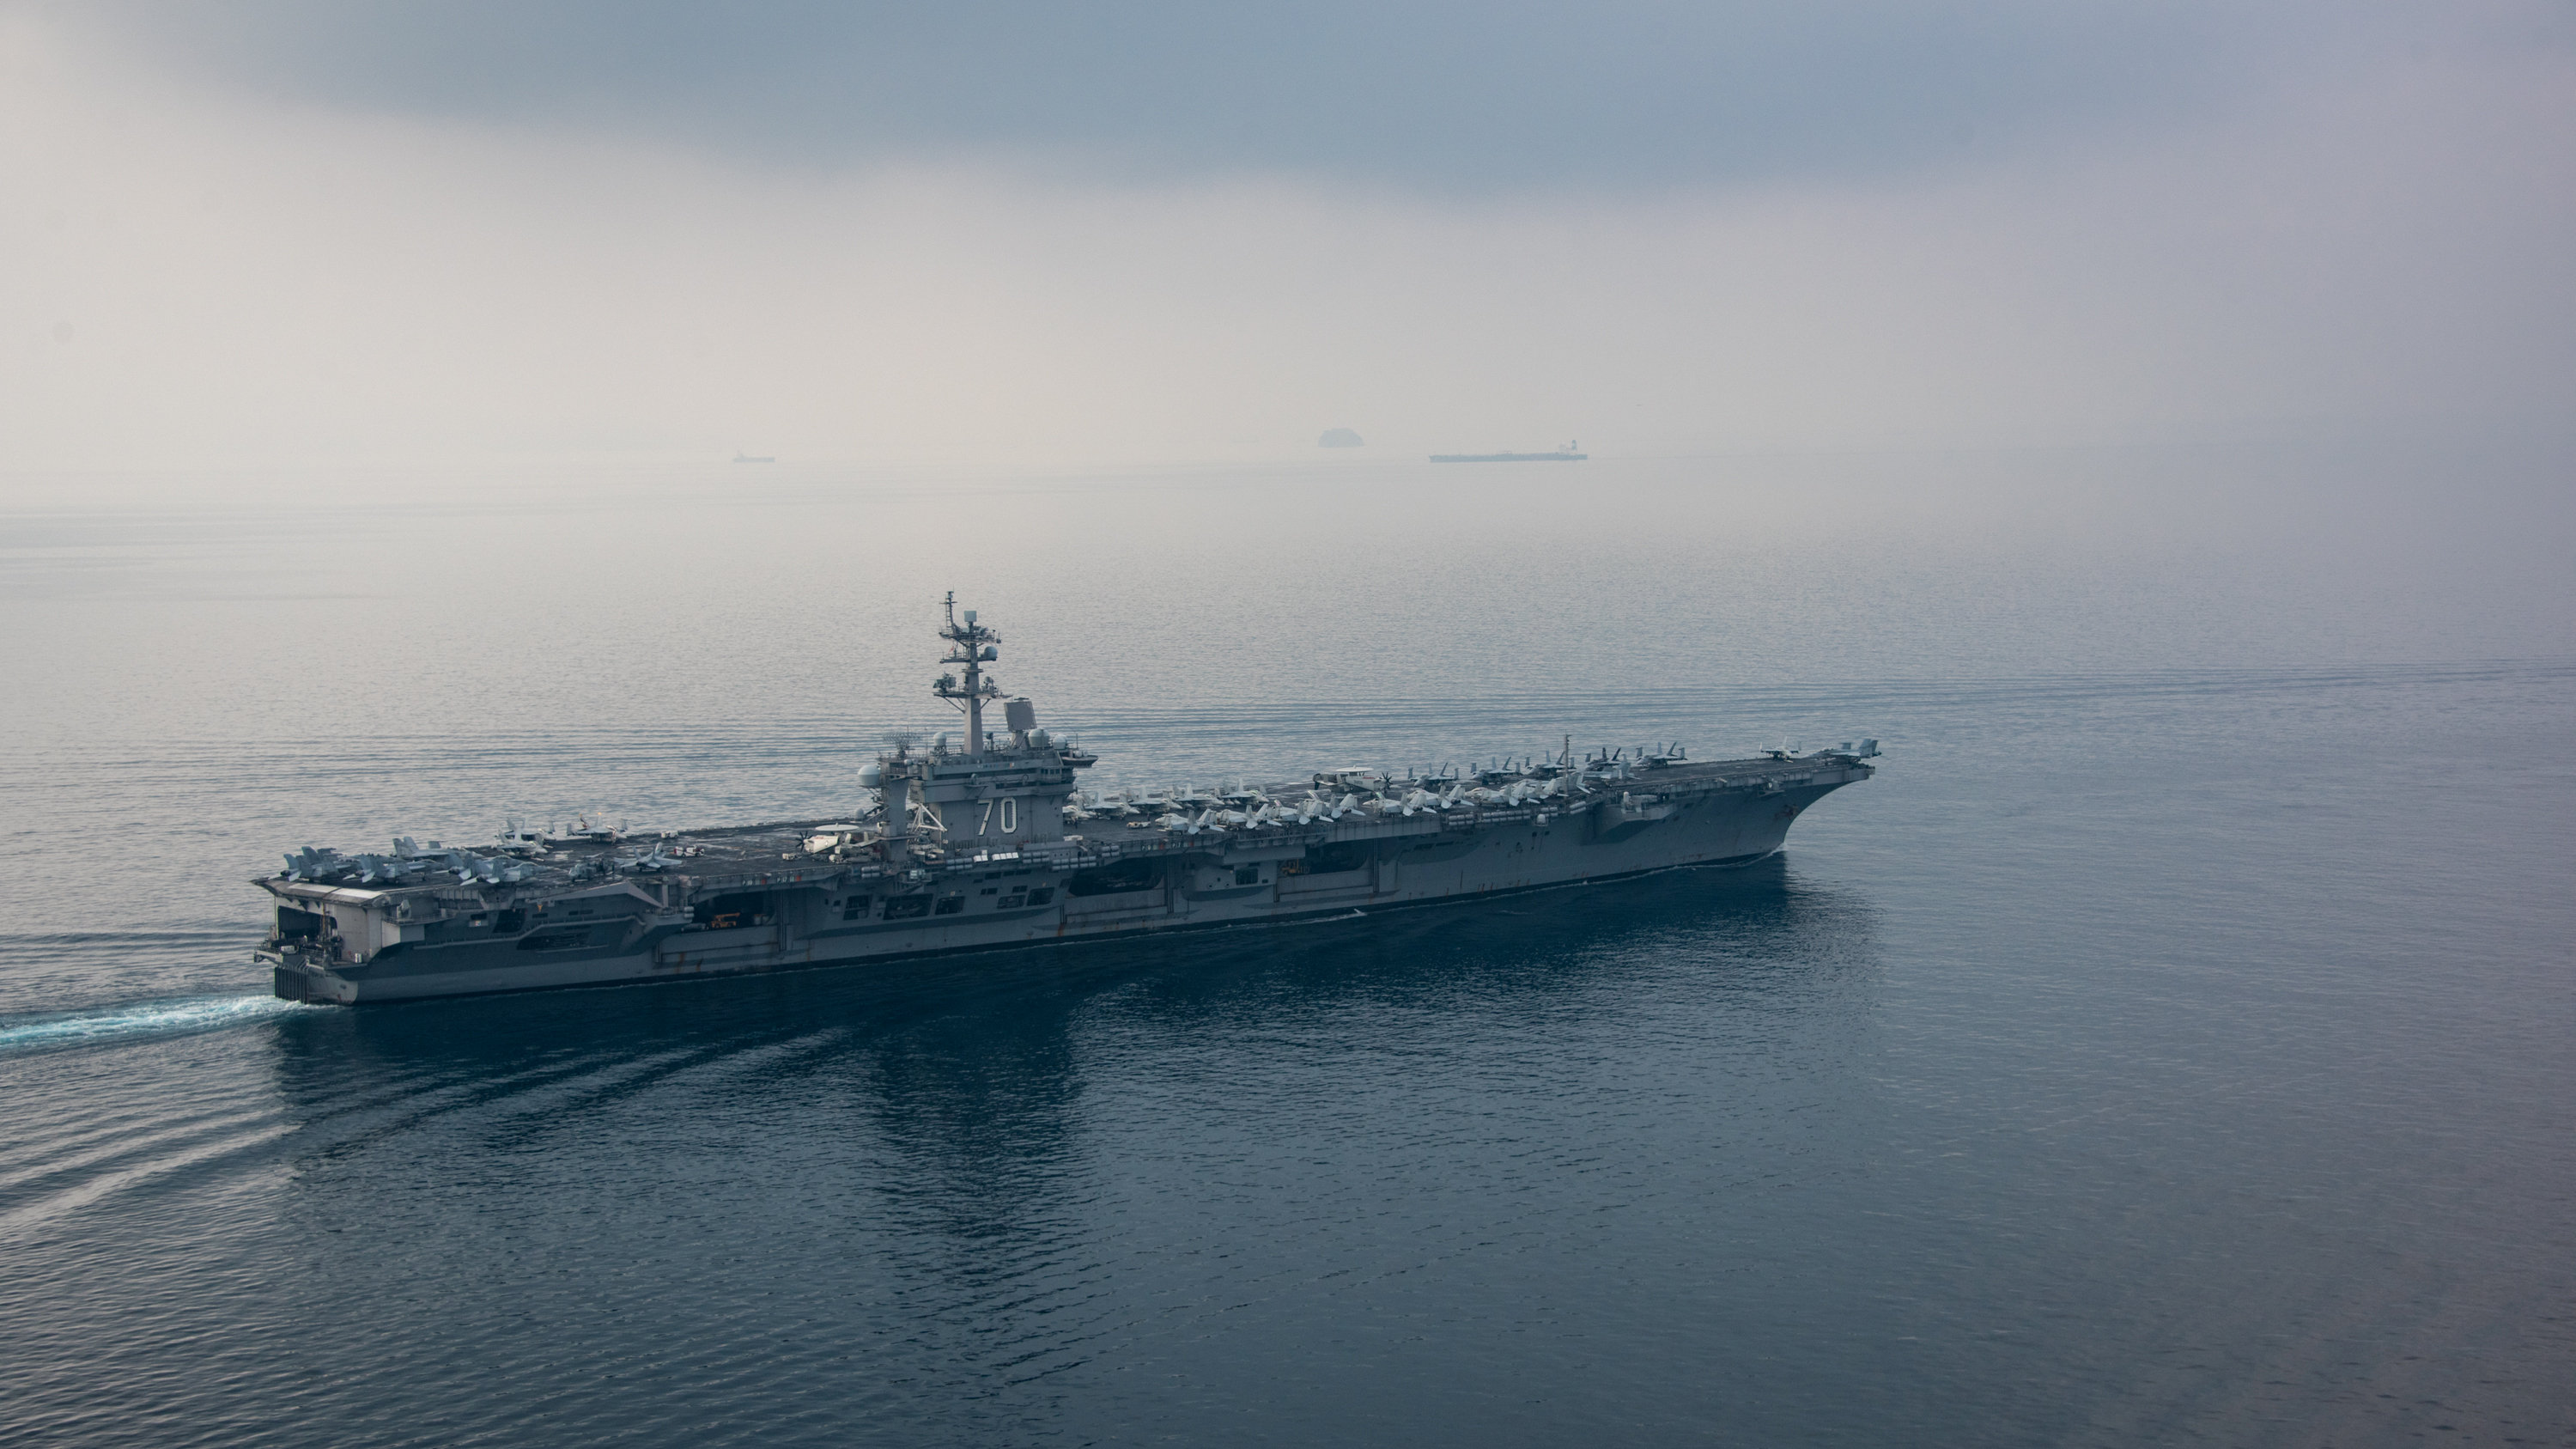 The USS Carl Vinson aircraft carrier, together with two guided-missile destroyers and a cruiser, are expected to arrive in the waters off the Korean Peninsula in the next few days and stage a combined tactical operation with the South Korean navy. (U.S. Navy via The New York Times)